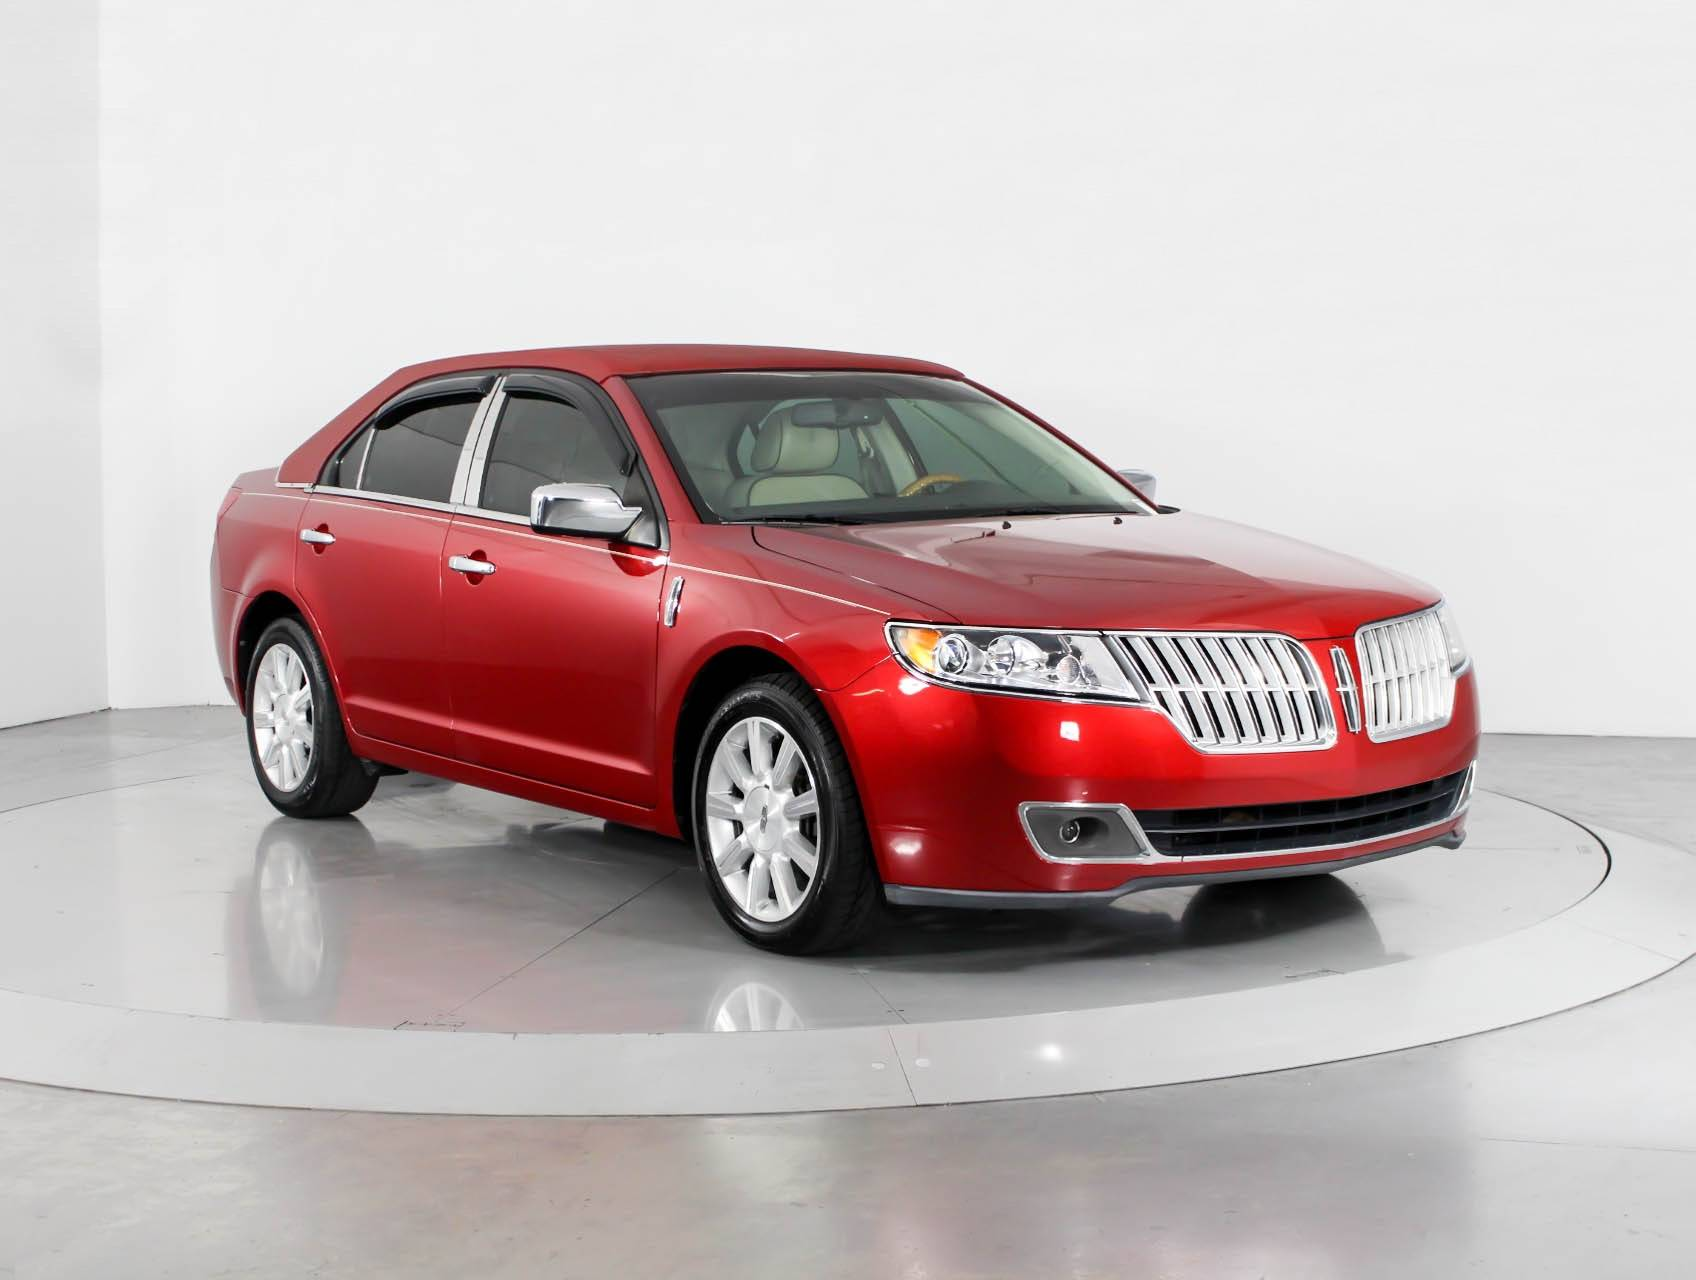 specifications details crossover and technical mkx data mks com lincoln conceptcarz dimensions engine mechanical